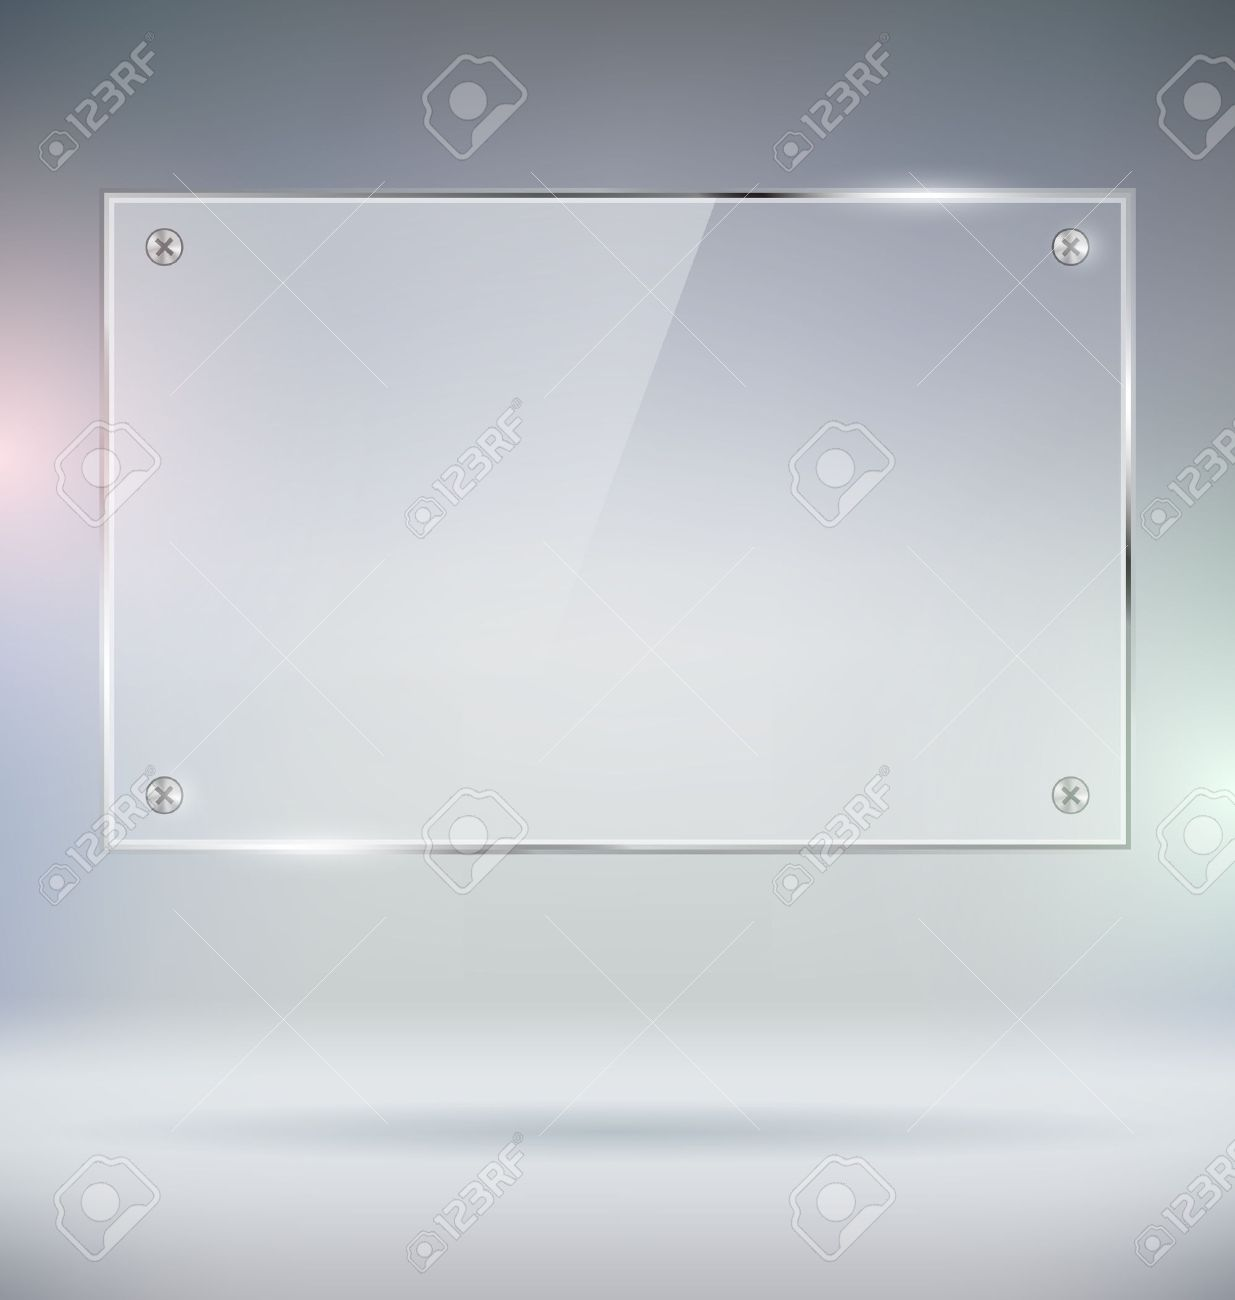 Blank Glass Plate Vector Mock Up - 47223056